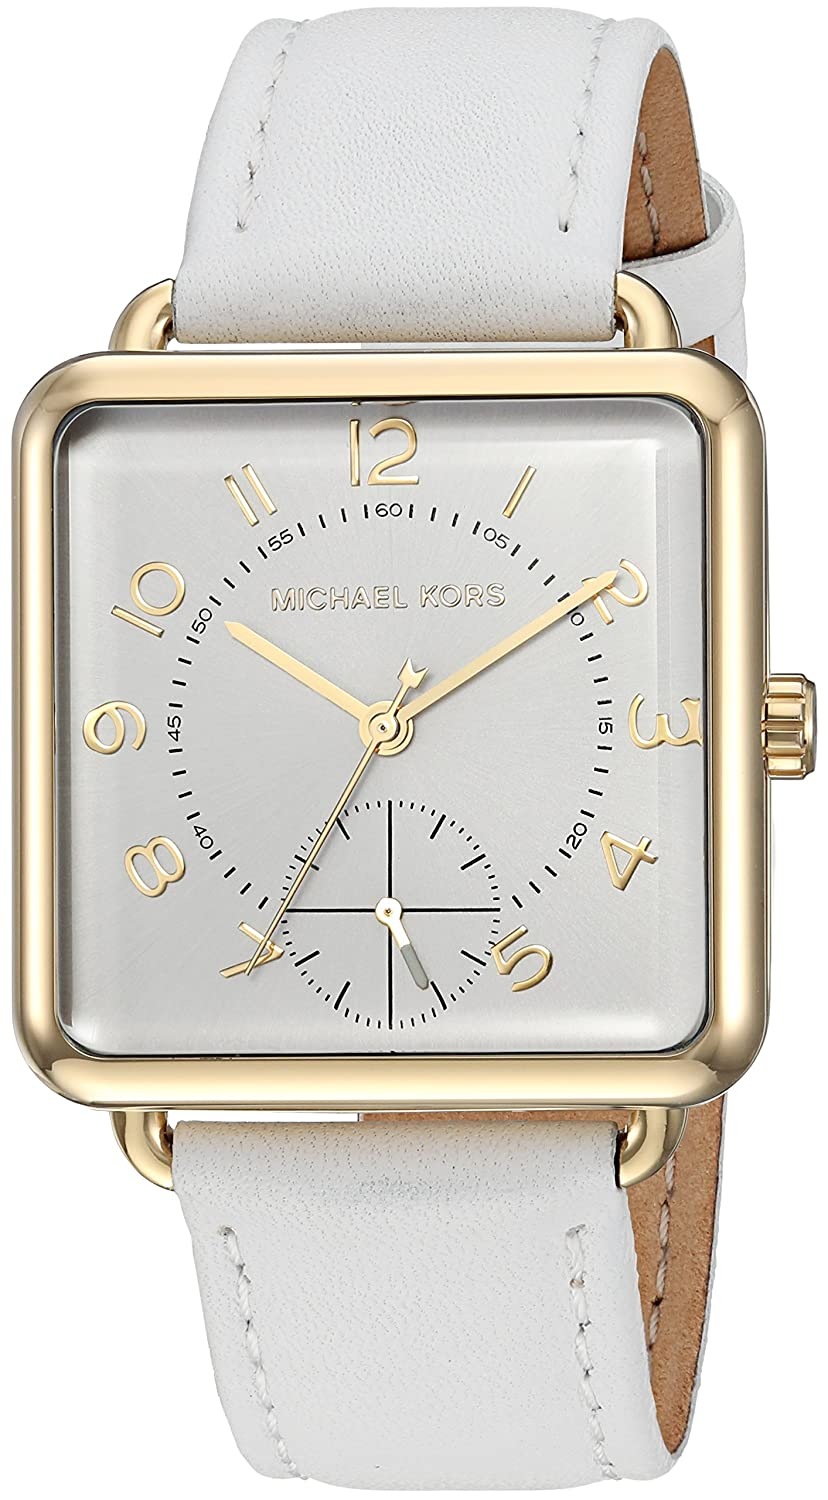 59325eb9df69 Amazon.com  Michael Kors Women s Stainless Steel Analog-Quartz Watch with  Leather Calfskin Strap